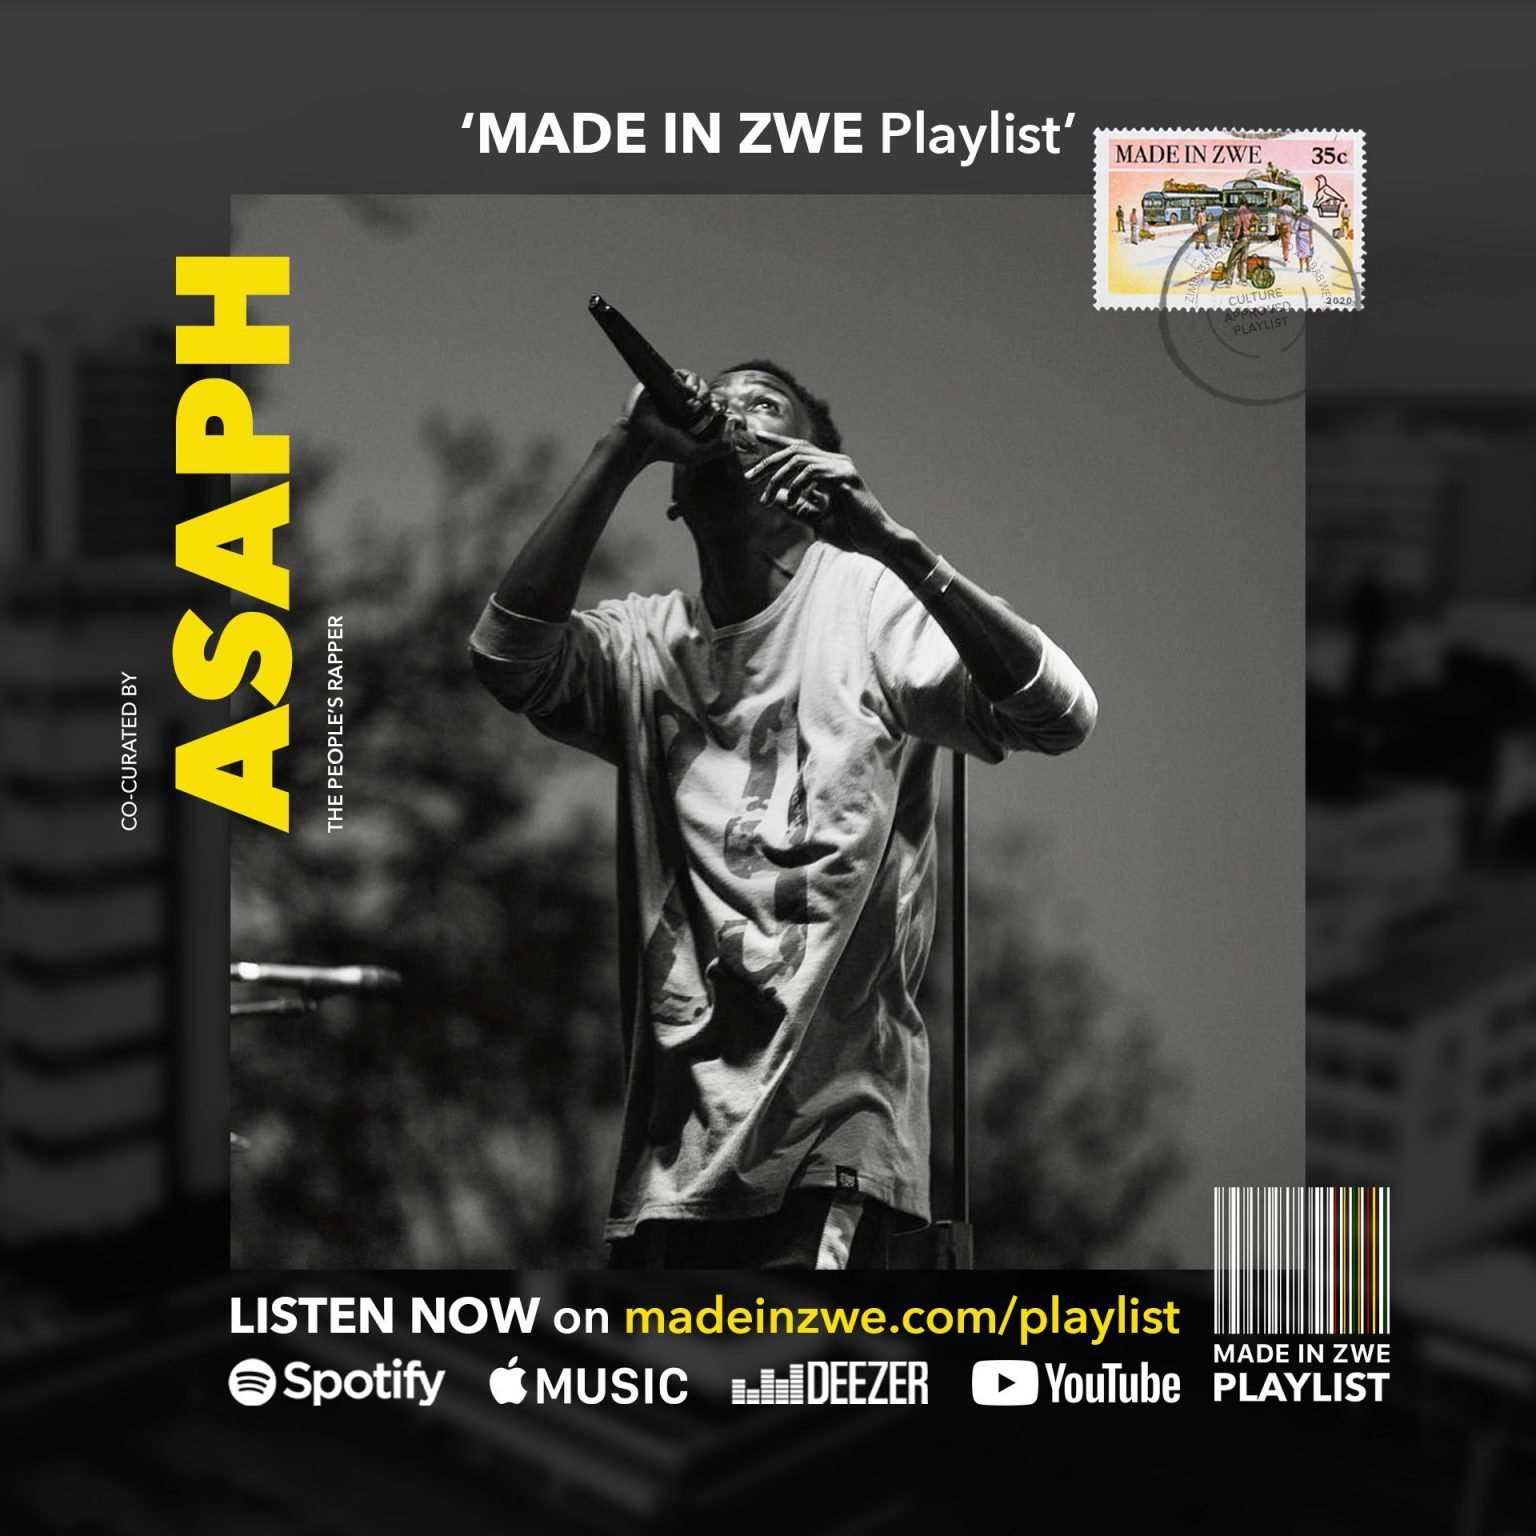 MADE IN ZWE Playlist ASAPH